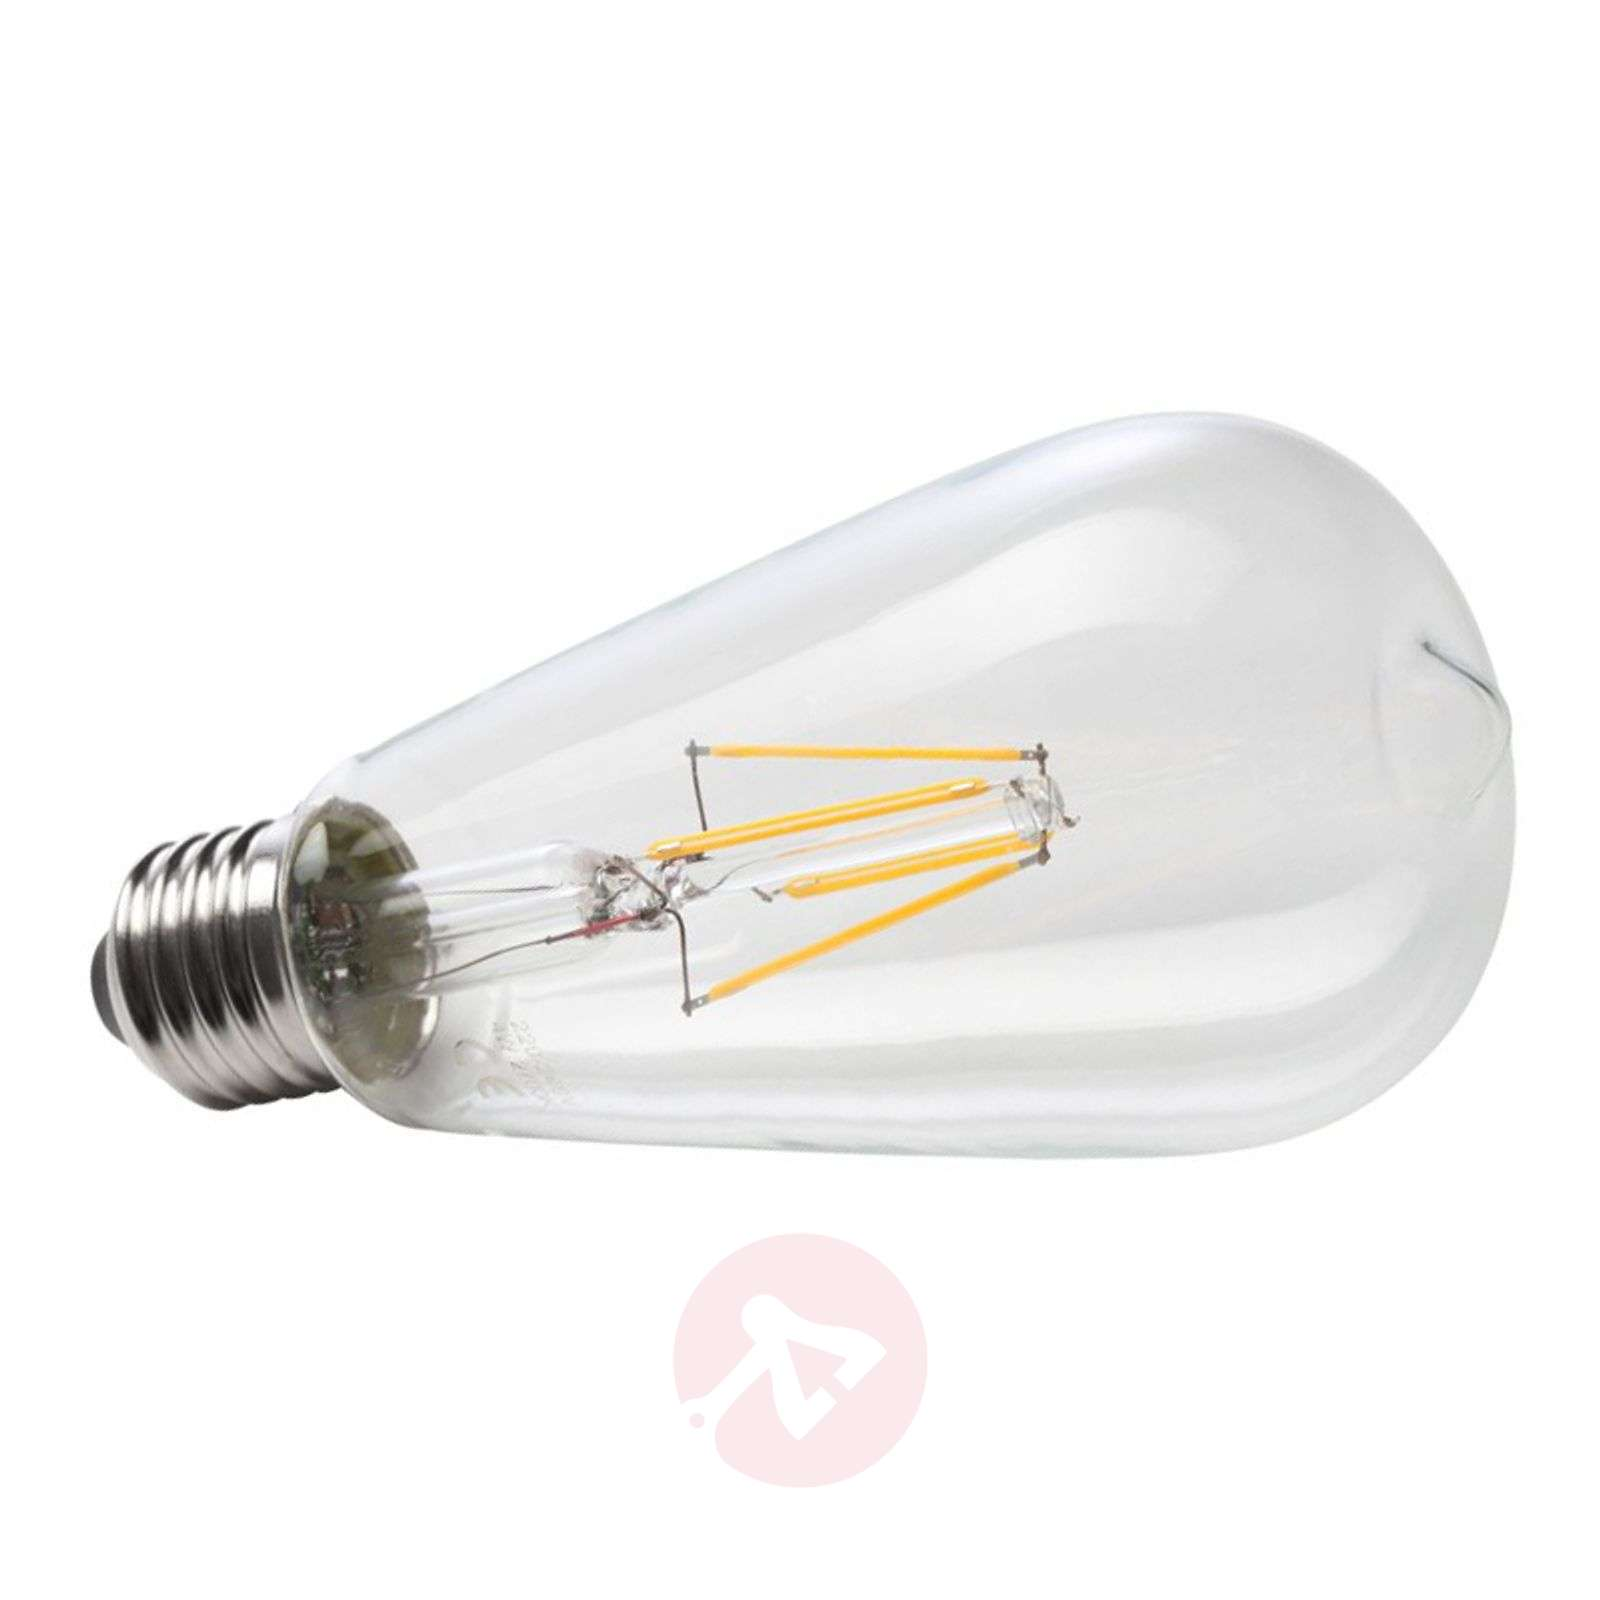 Ampoule rustique LED à filament E27 6W 827-6520240-01